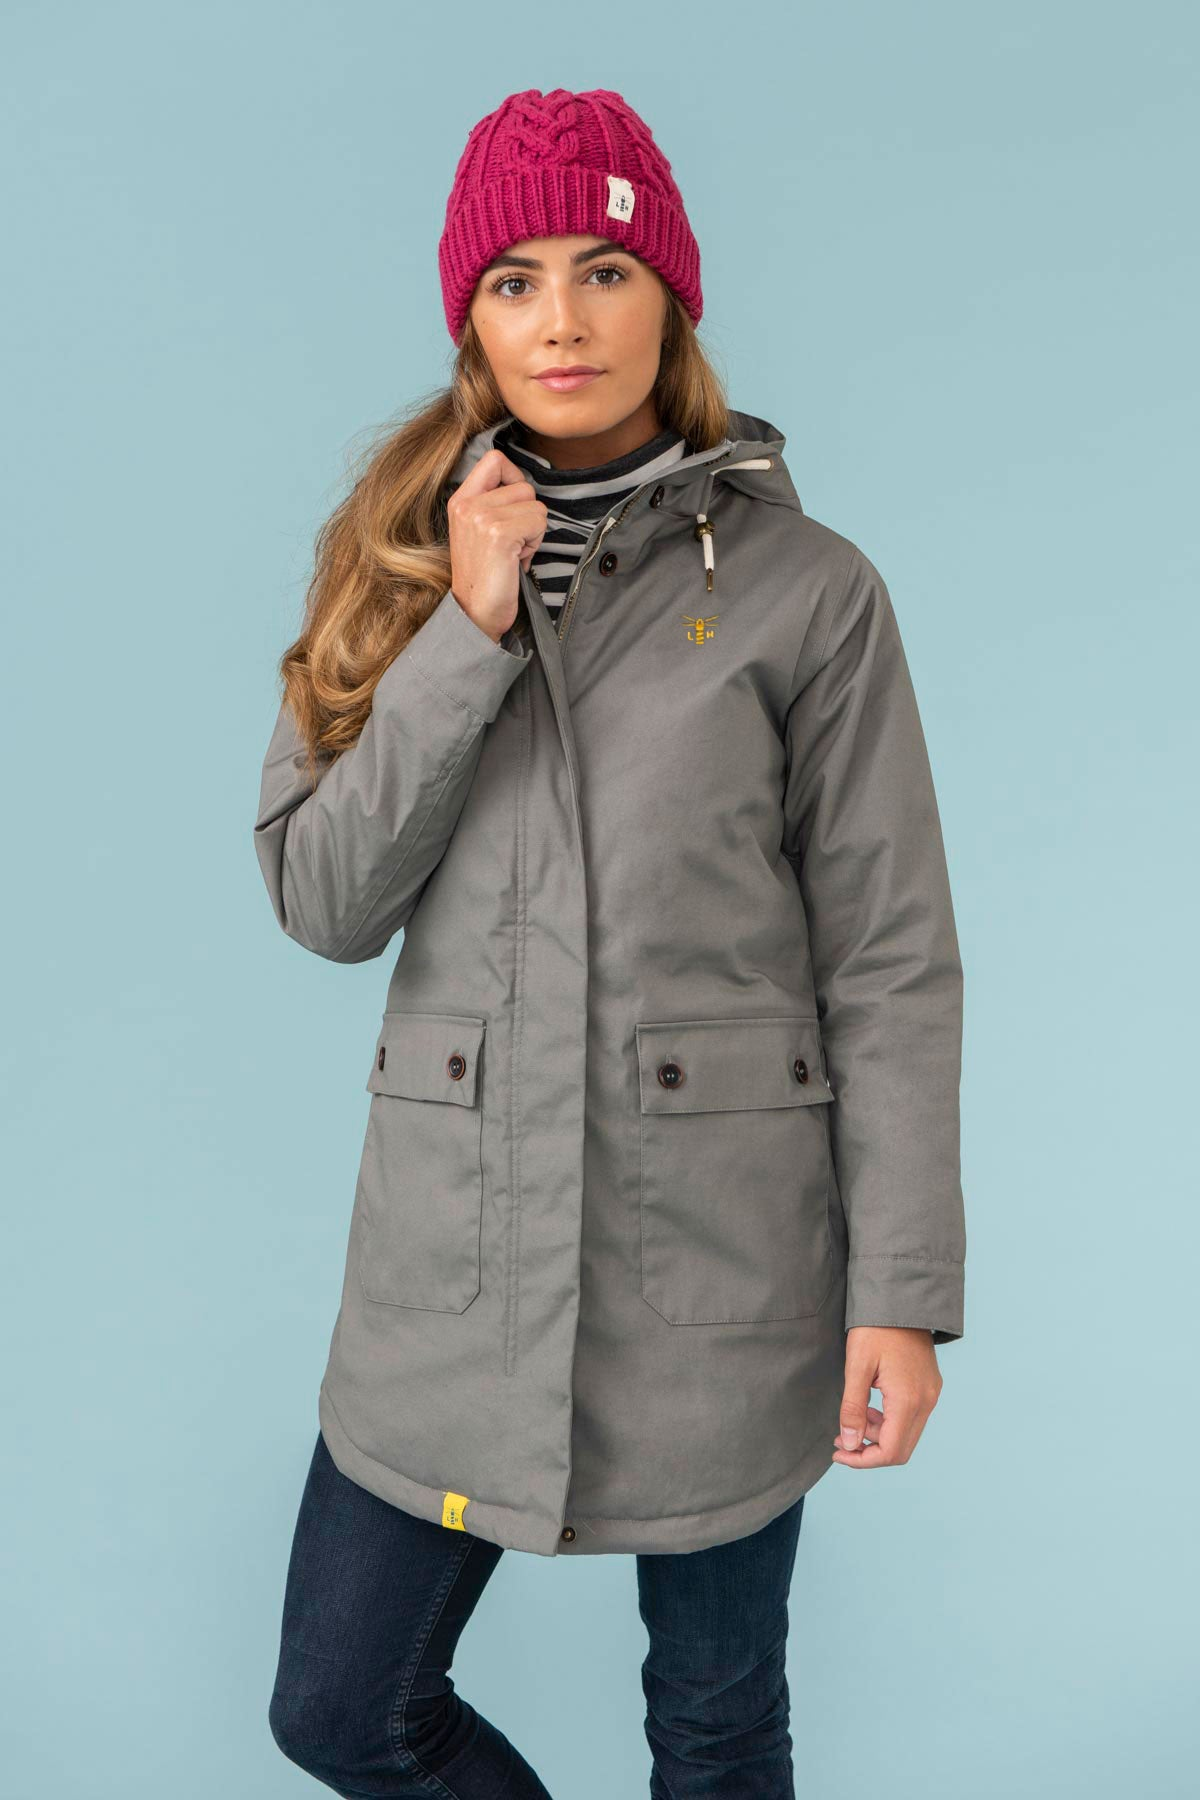 Lighthouse Florence Women's Coat - Exclusively online.